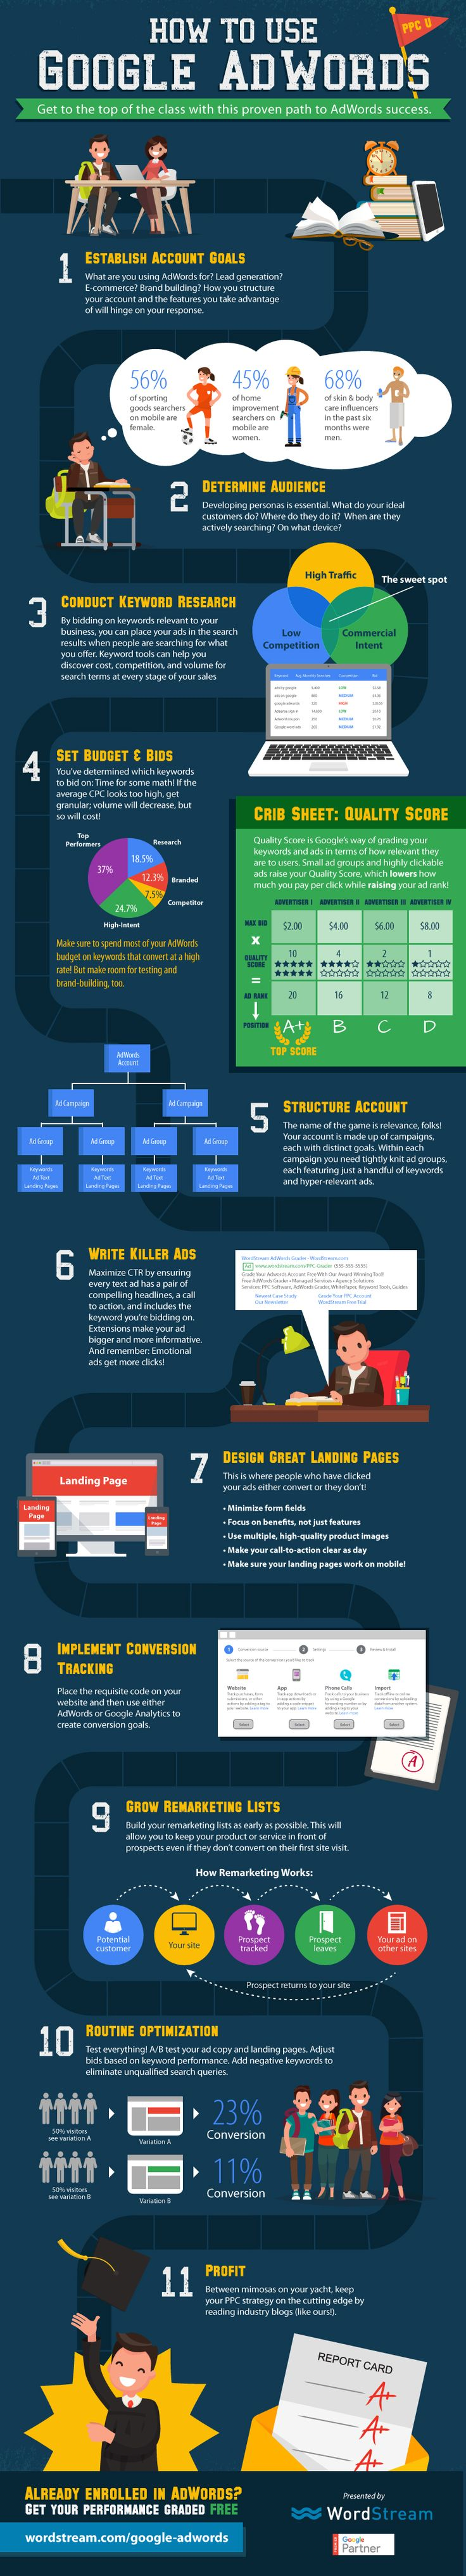 How to Use Google Adwords: A Beginners Guide to Pay per Click Marketing [Infographic]